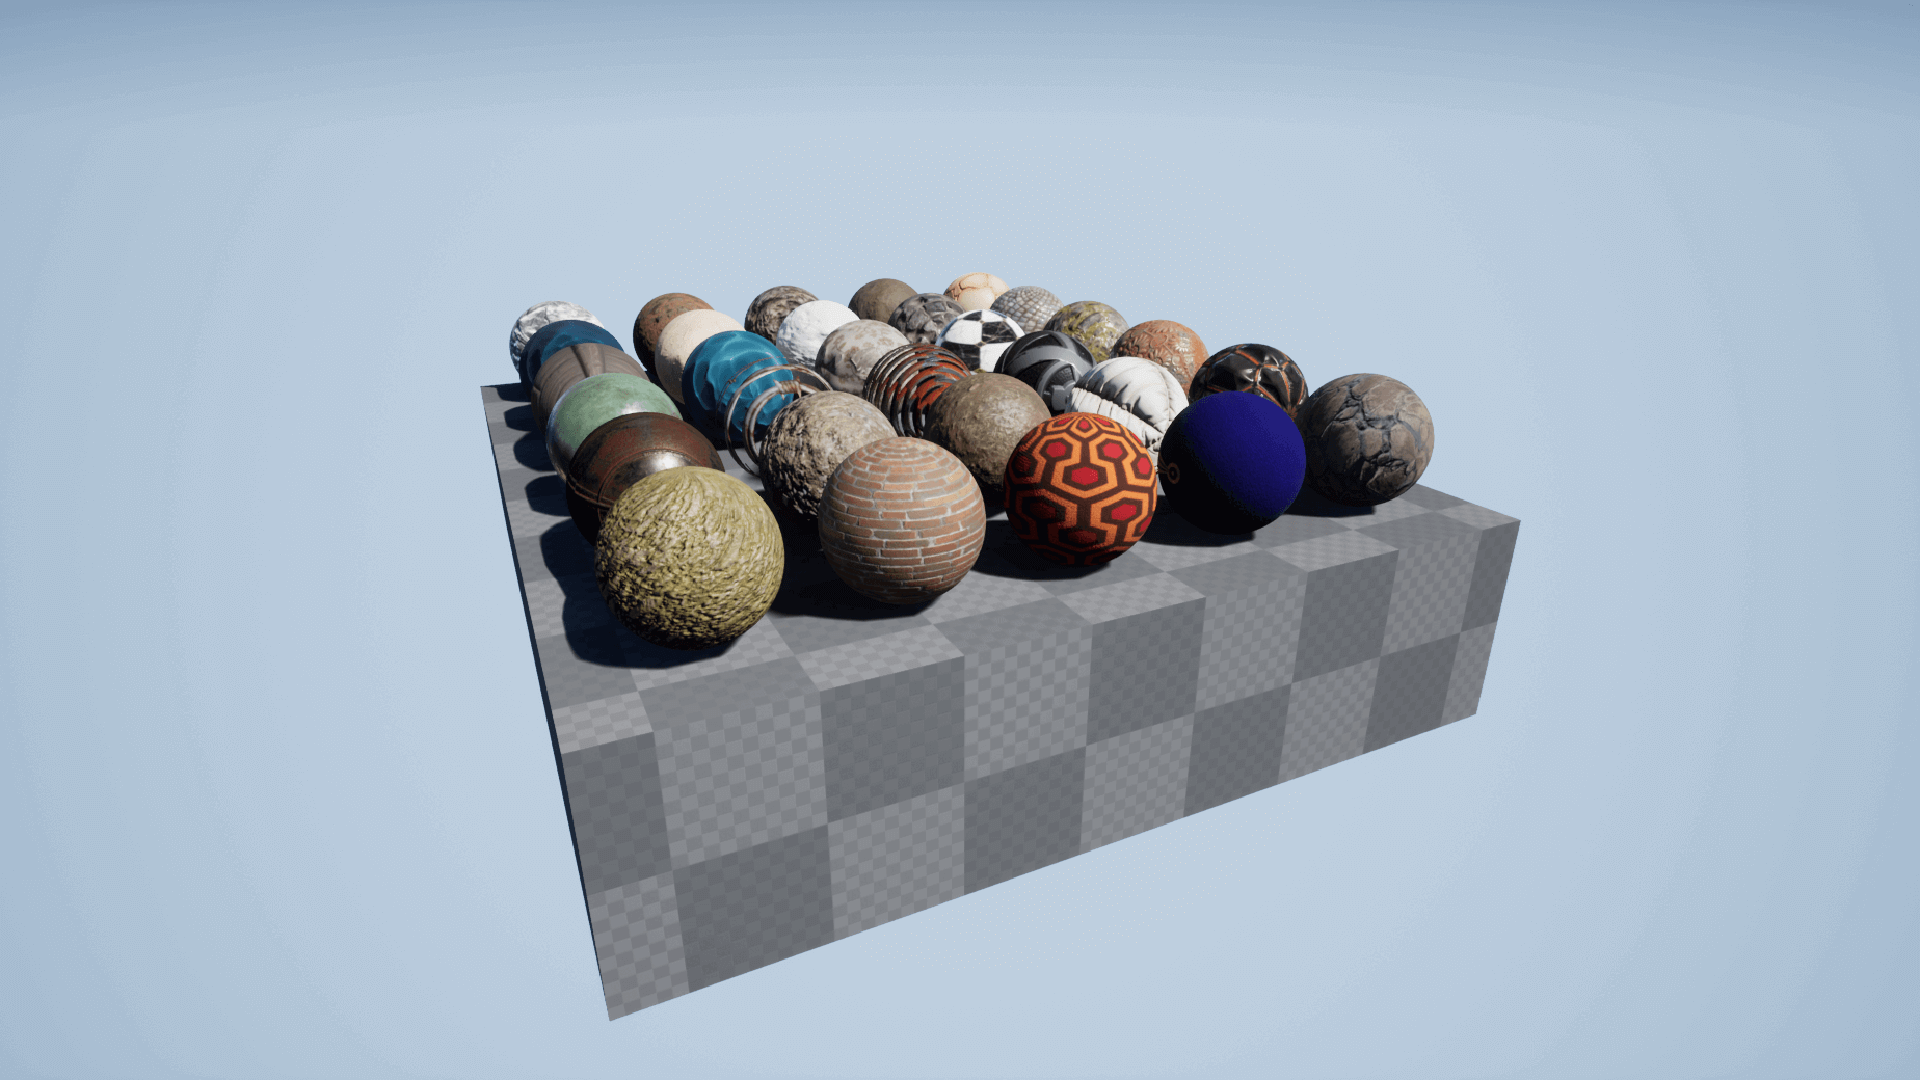 GameTextures com 2019 FREE Material Pack by GameTextures com in